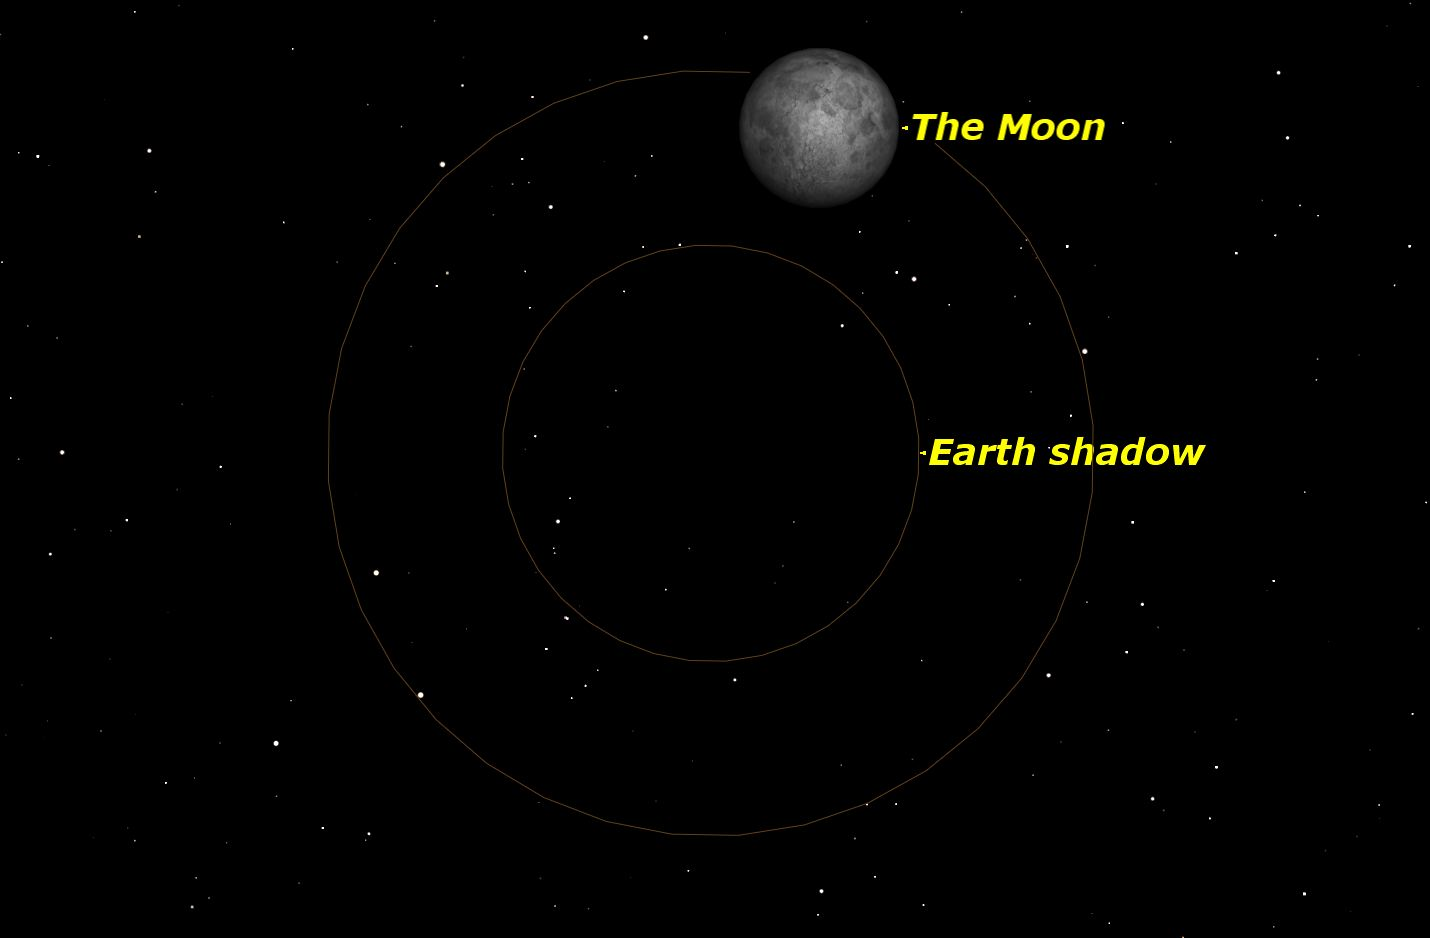 'Lunar Eclipse 23 March 2016' – 4 hours and 15 minutes on Wednesday morning March-2016-penumbral-eclipse-moon-image